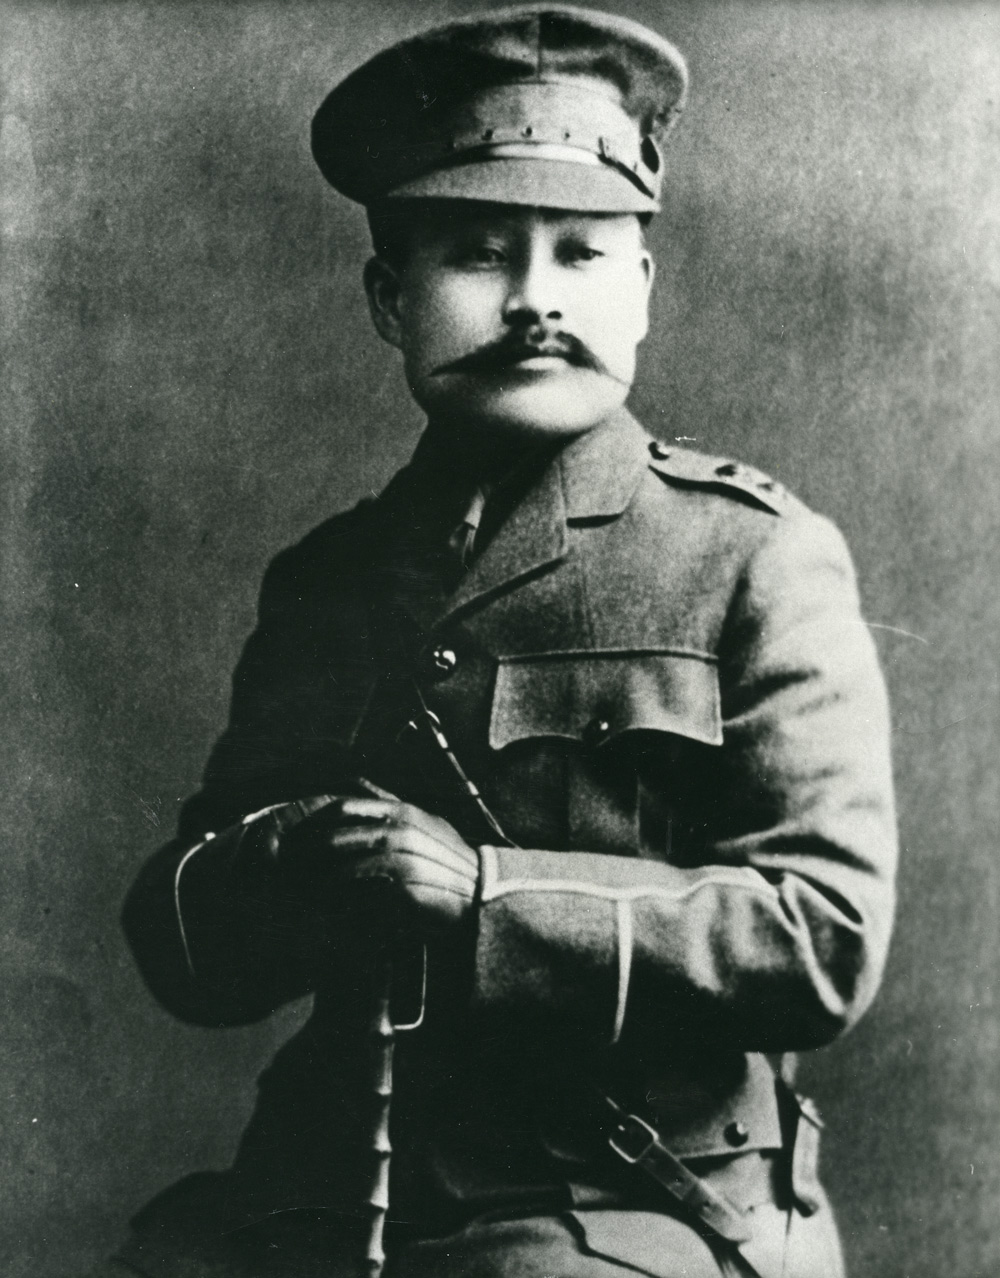 Yasushi Yamazaki in his Canadian army uniform, circa 1916. Yamazaki was made an honorary colonel for his role in organizing the Canadian Japanese Volunteer Corps. Japanese Canadian Cultural Centre 2005.1.1.26